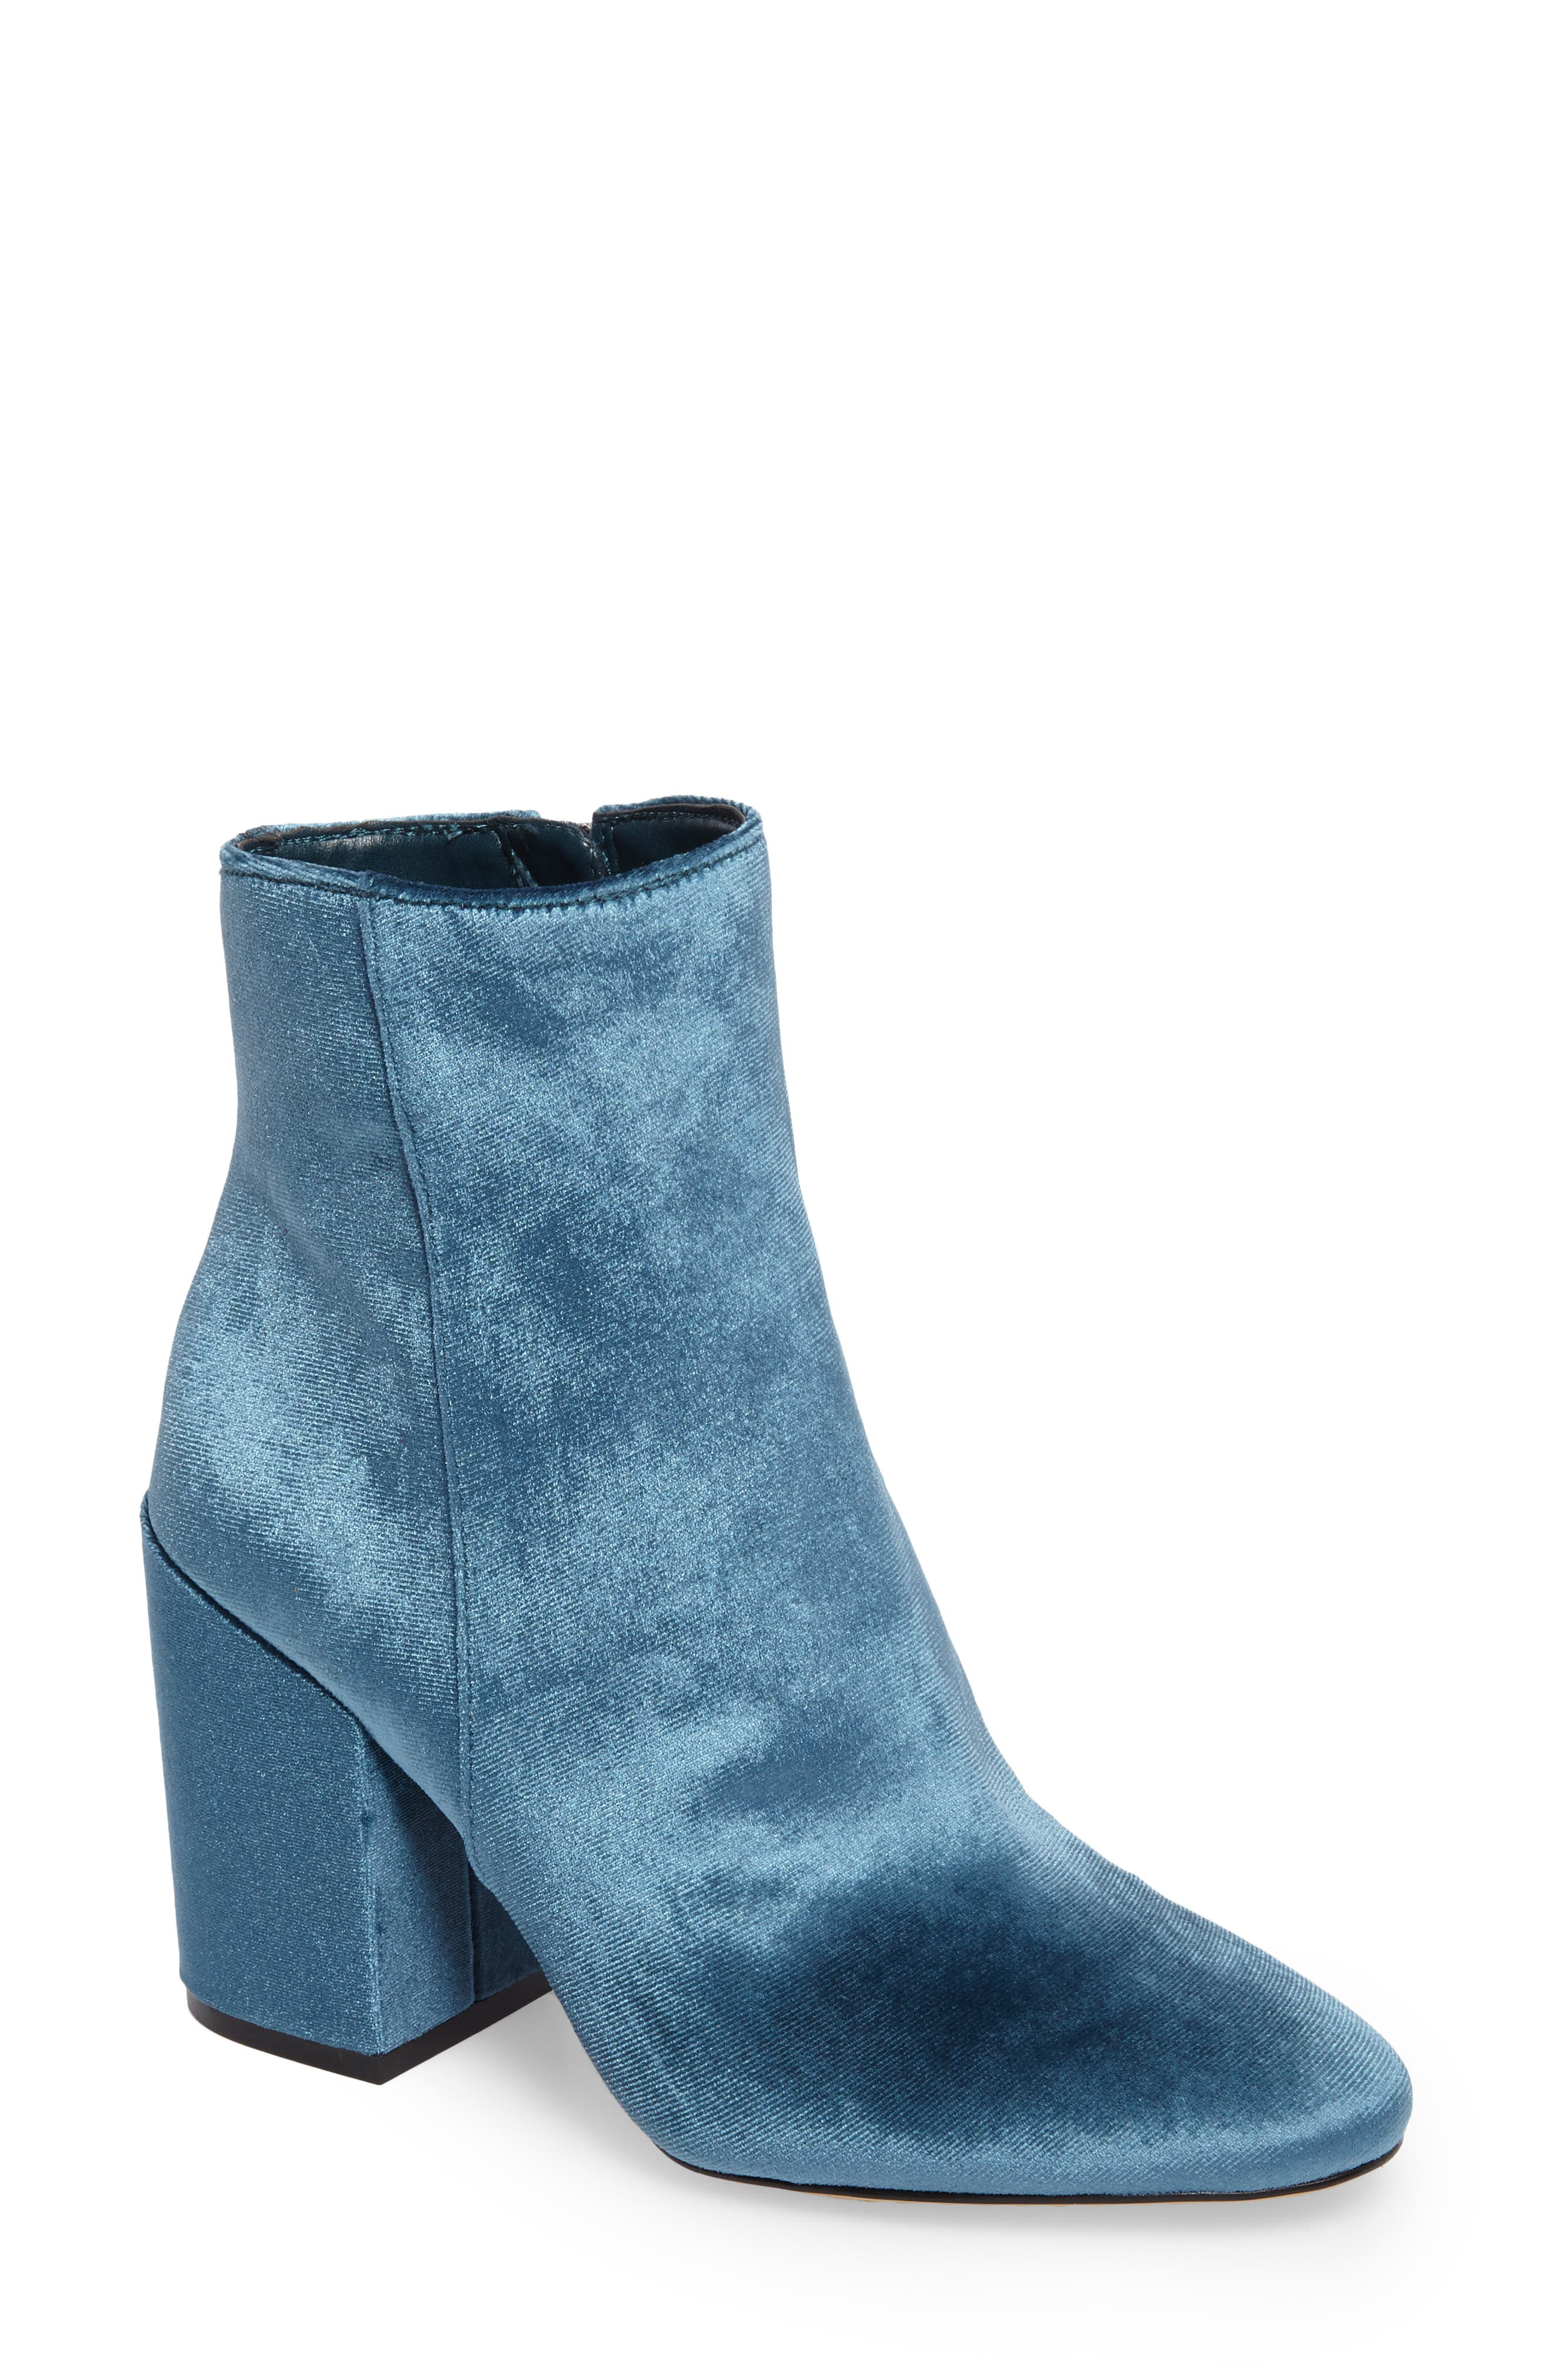 Alternate Image 1 Selected - Vince Camuto Destilly 2 Bootie (Women)